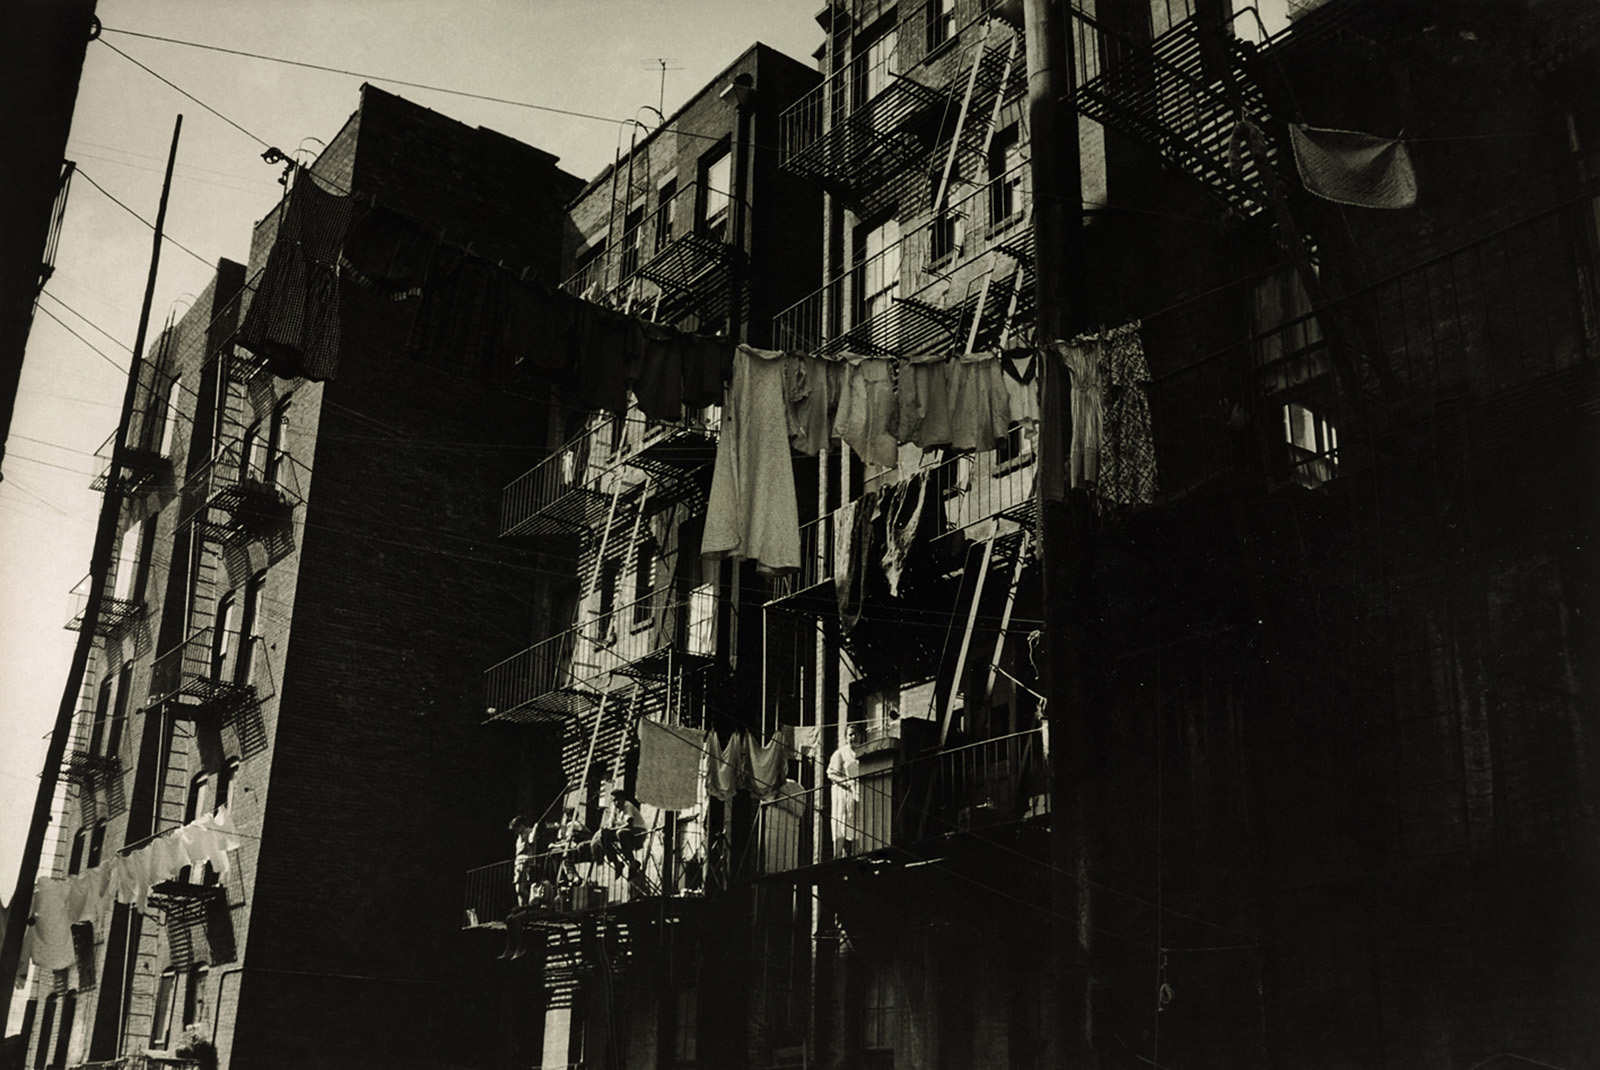 View of a side of a building with clothes hanging.